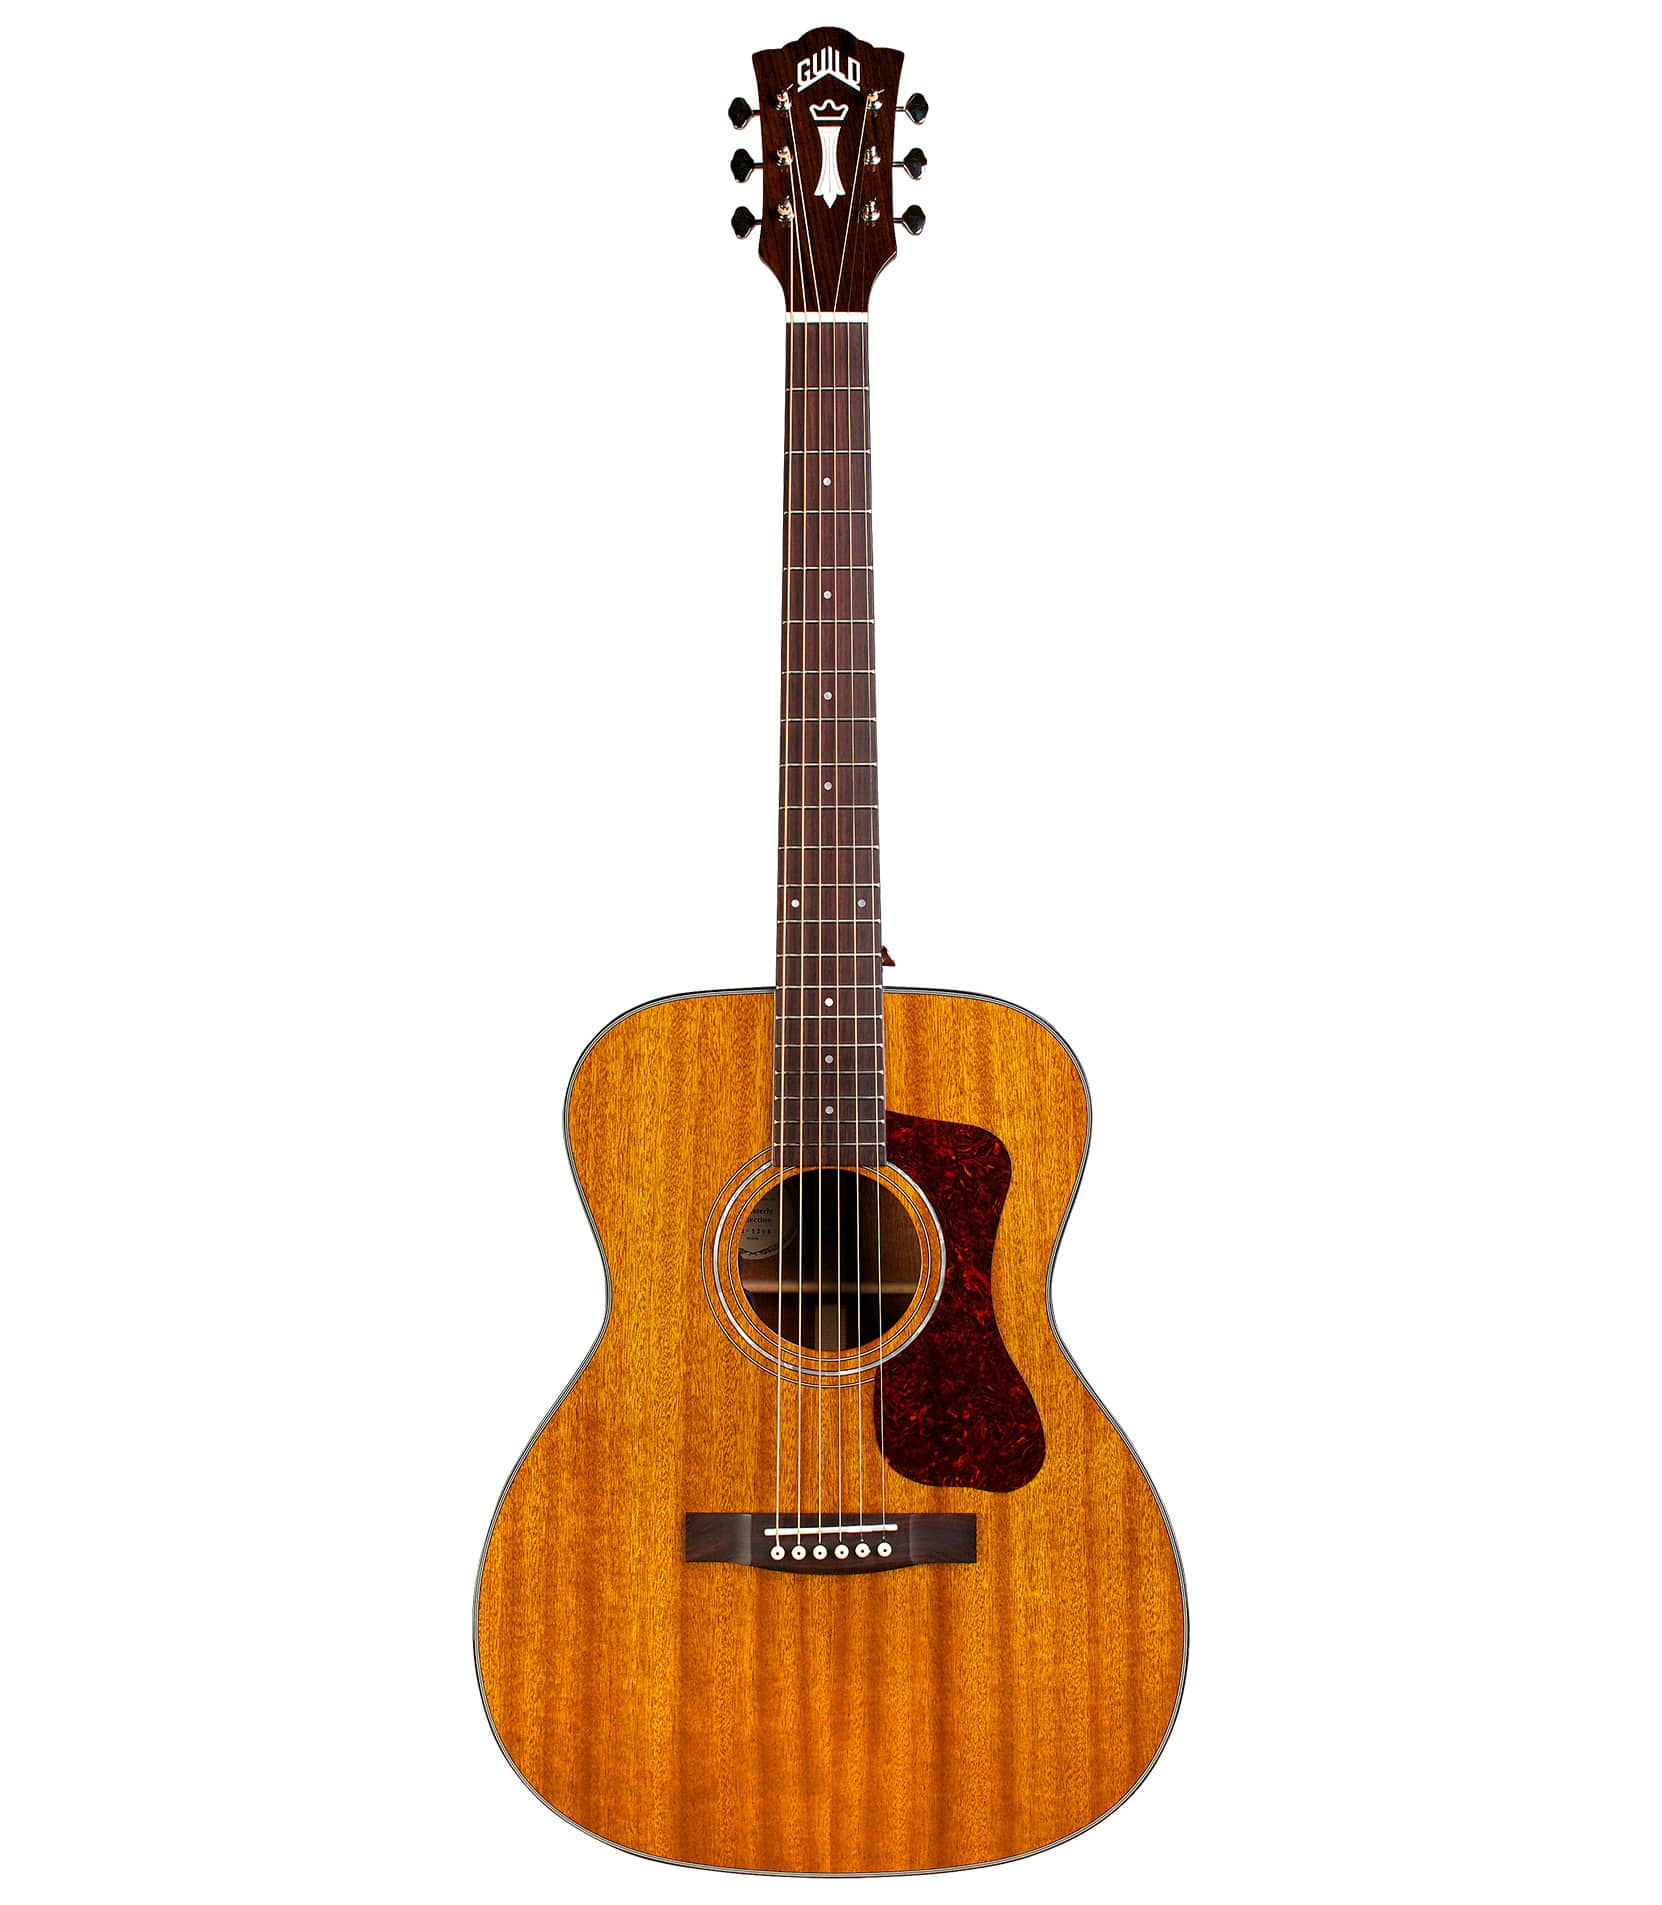 Buy guild OM120 Orchestra Acoustic Guitar Natural Finish Melody House